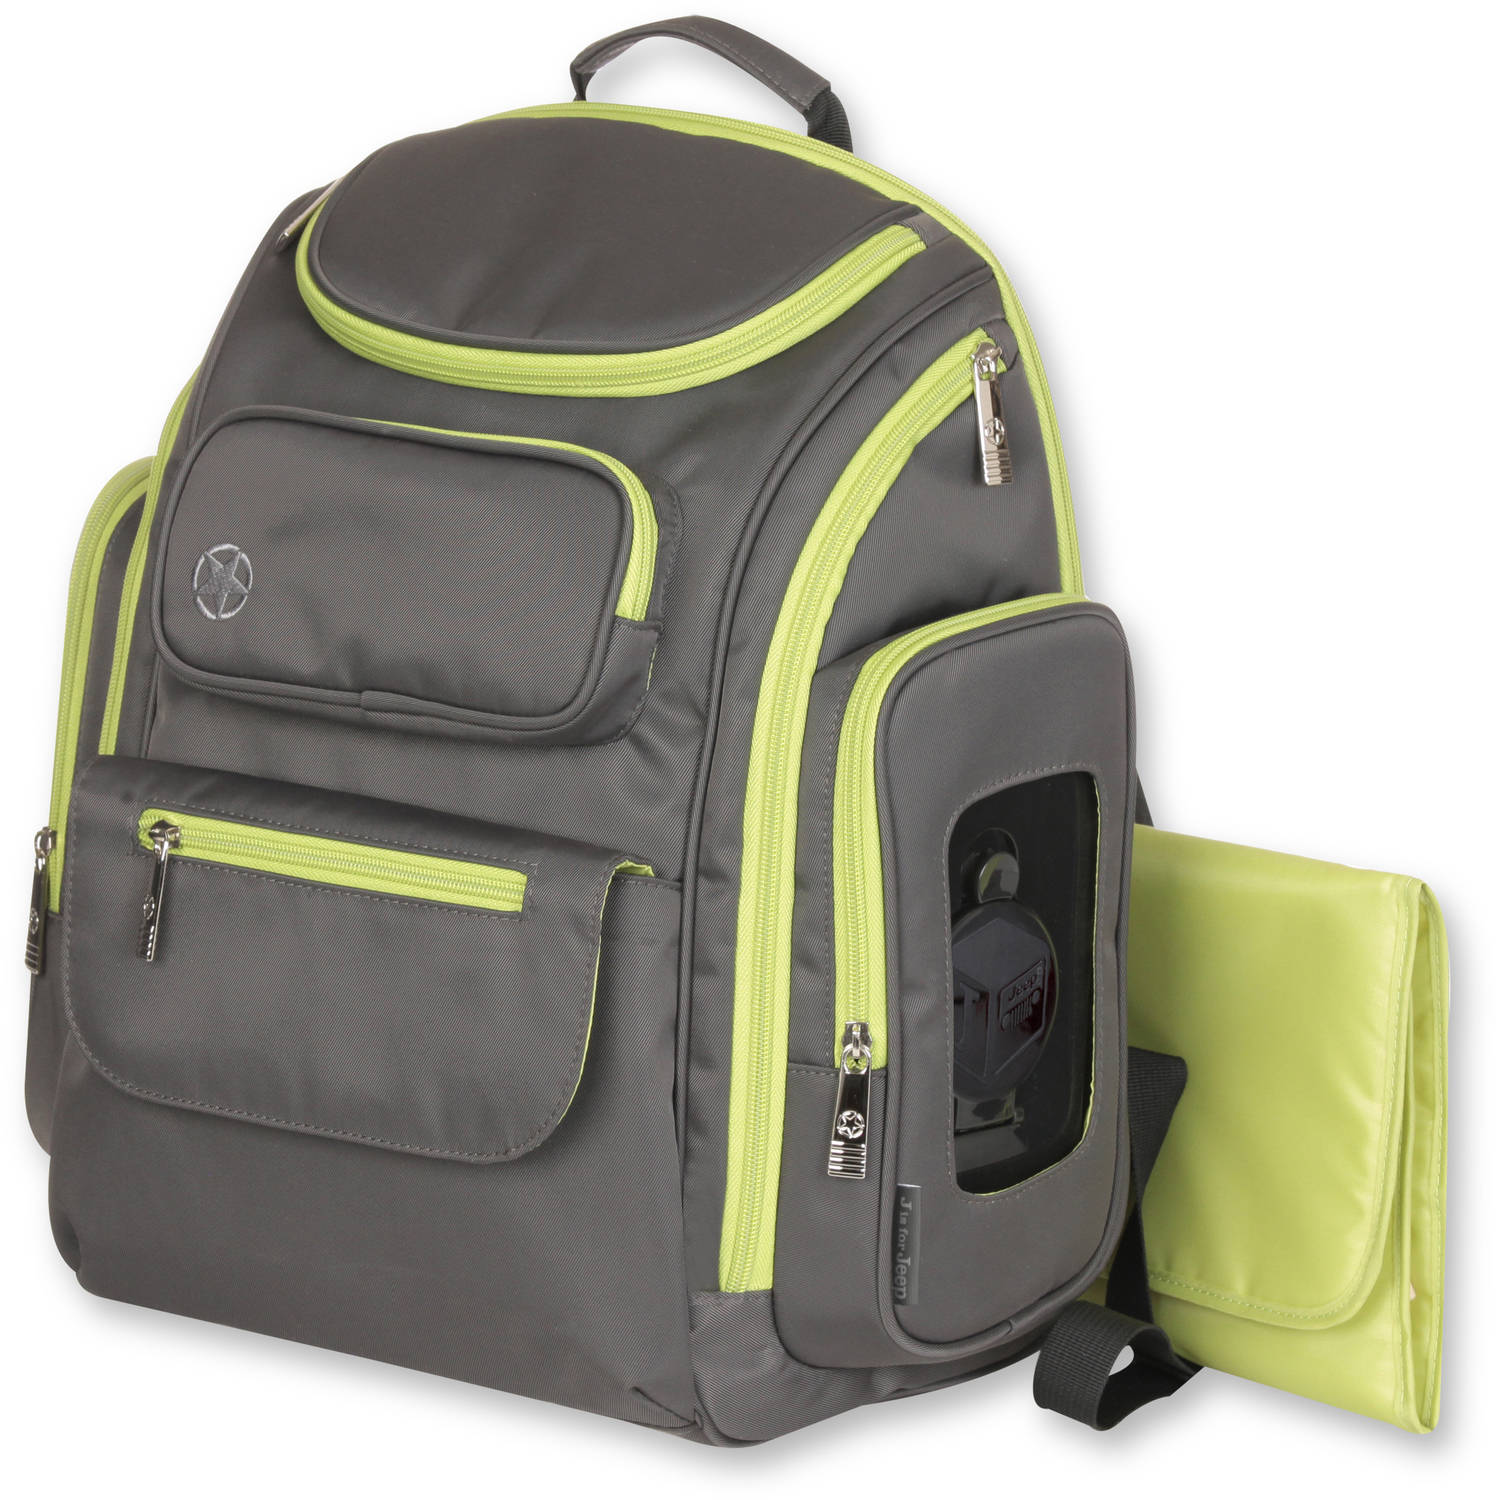 Jeep Perfect Pockets Backpack Diaper Bag, Gray/Gray